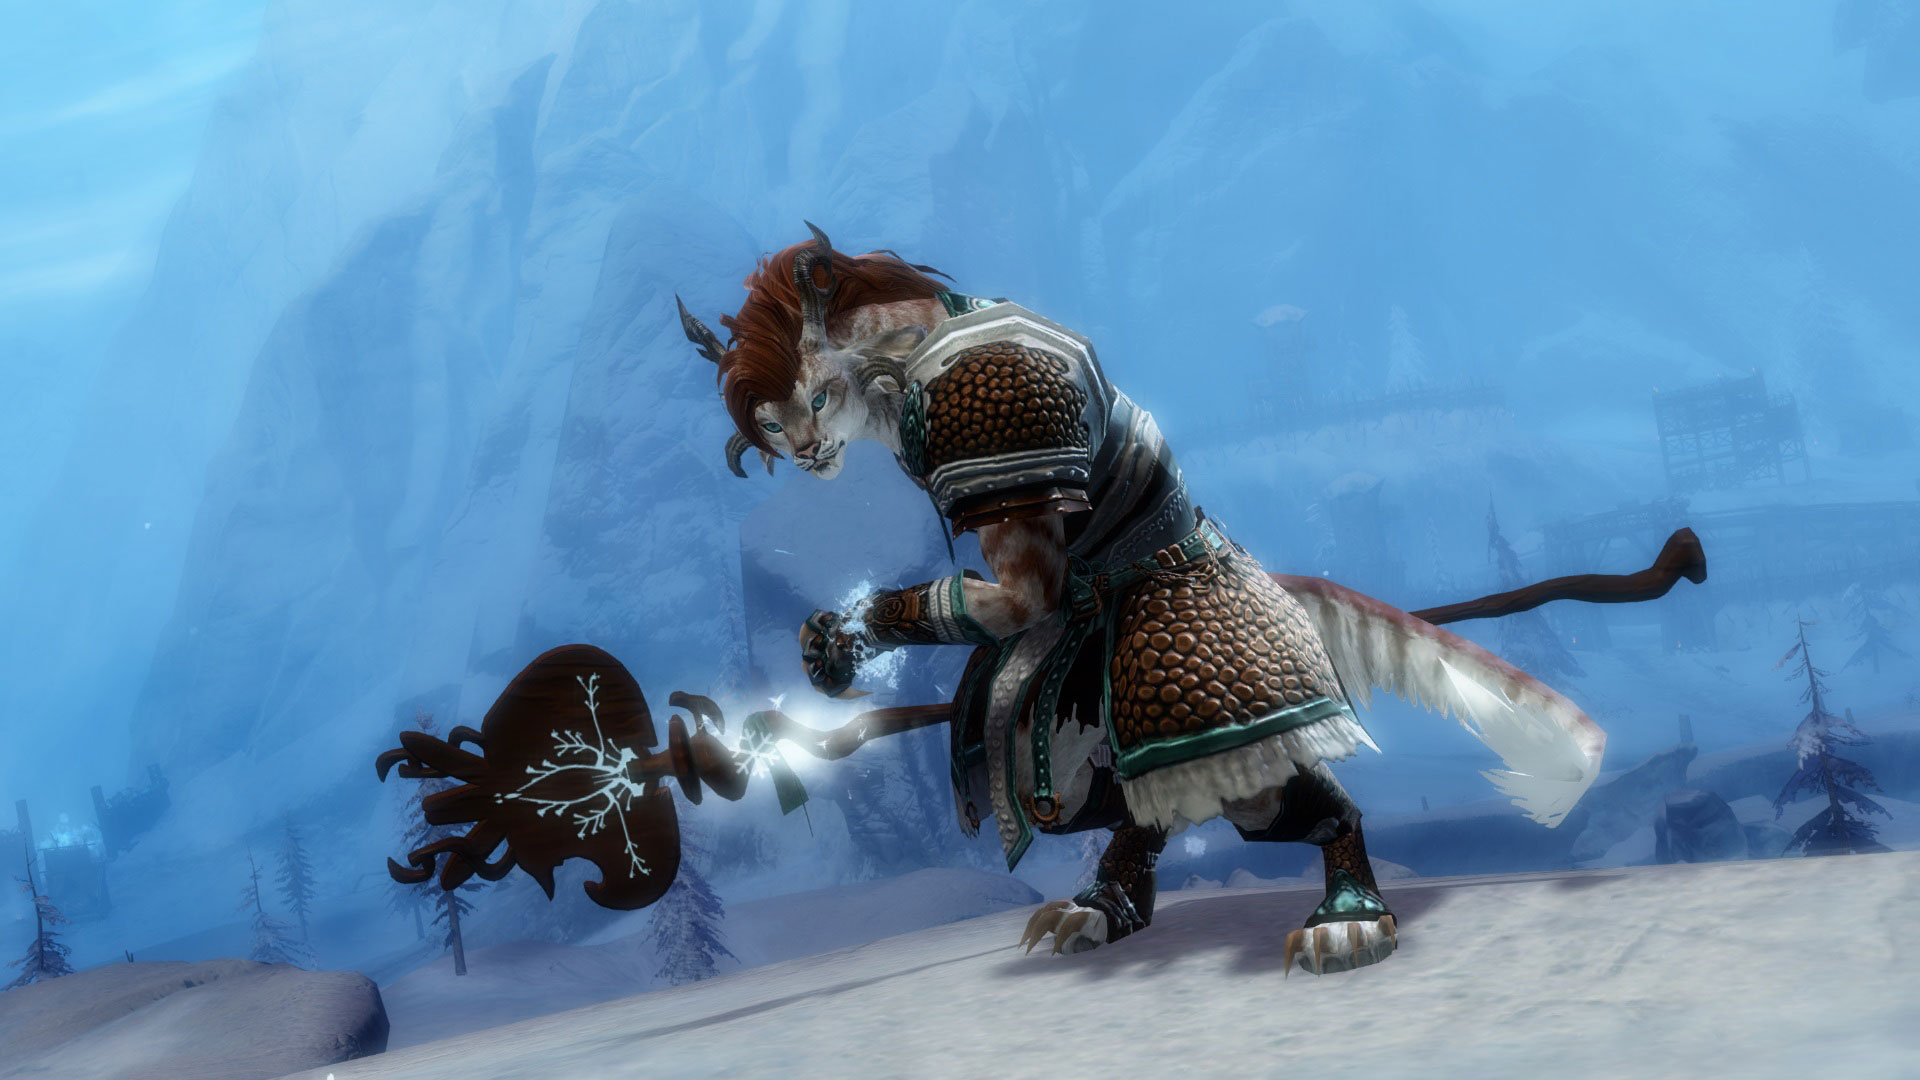 Guild Wars 2 New Ancestral Outfit and Mini Jaguar Cub in the Gem